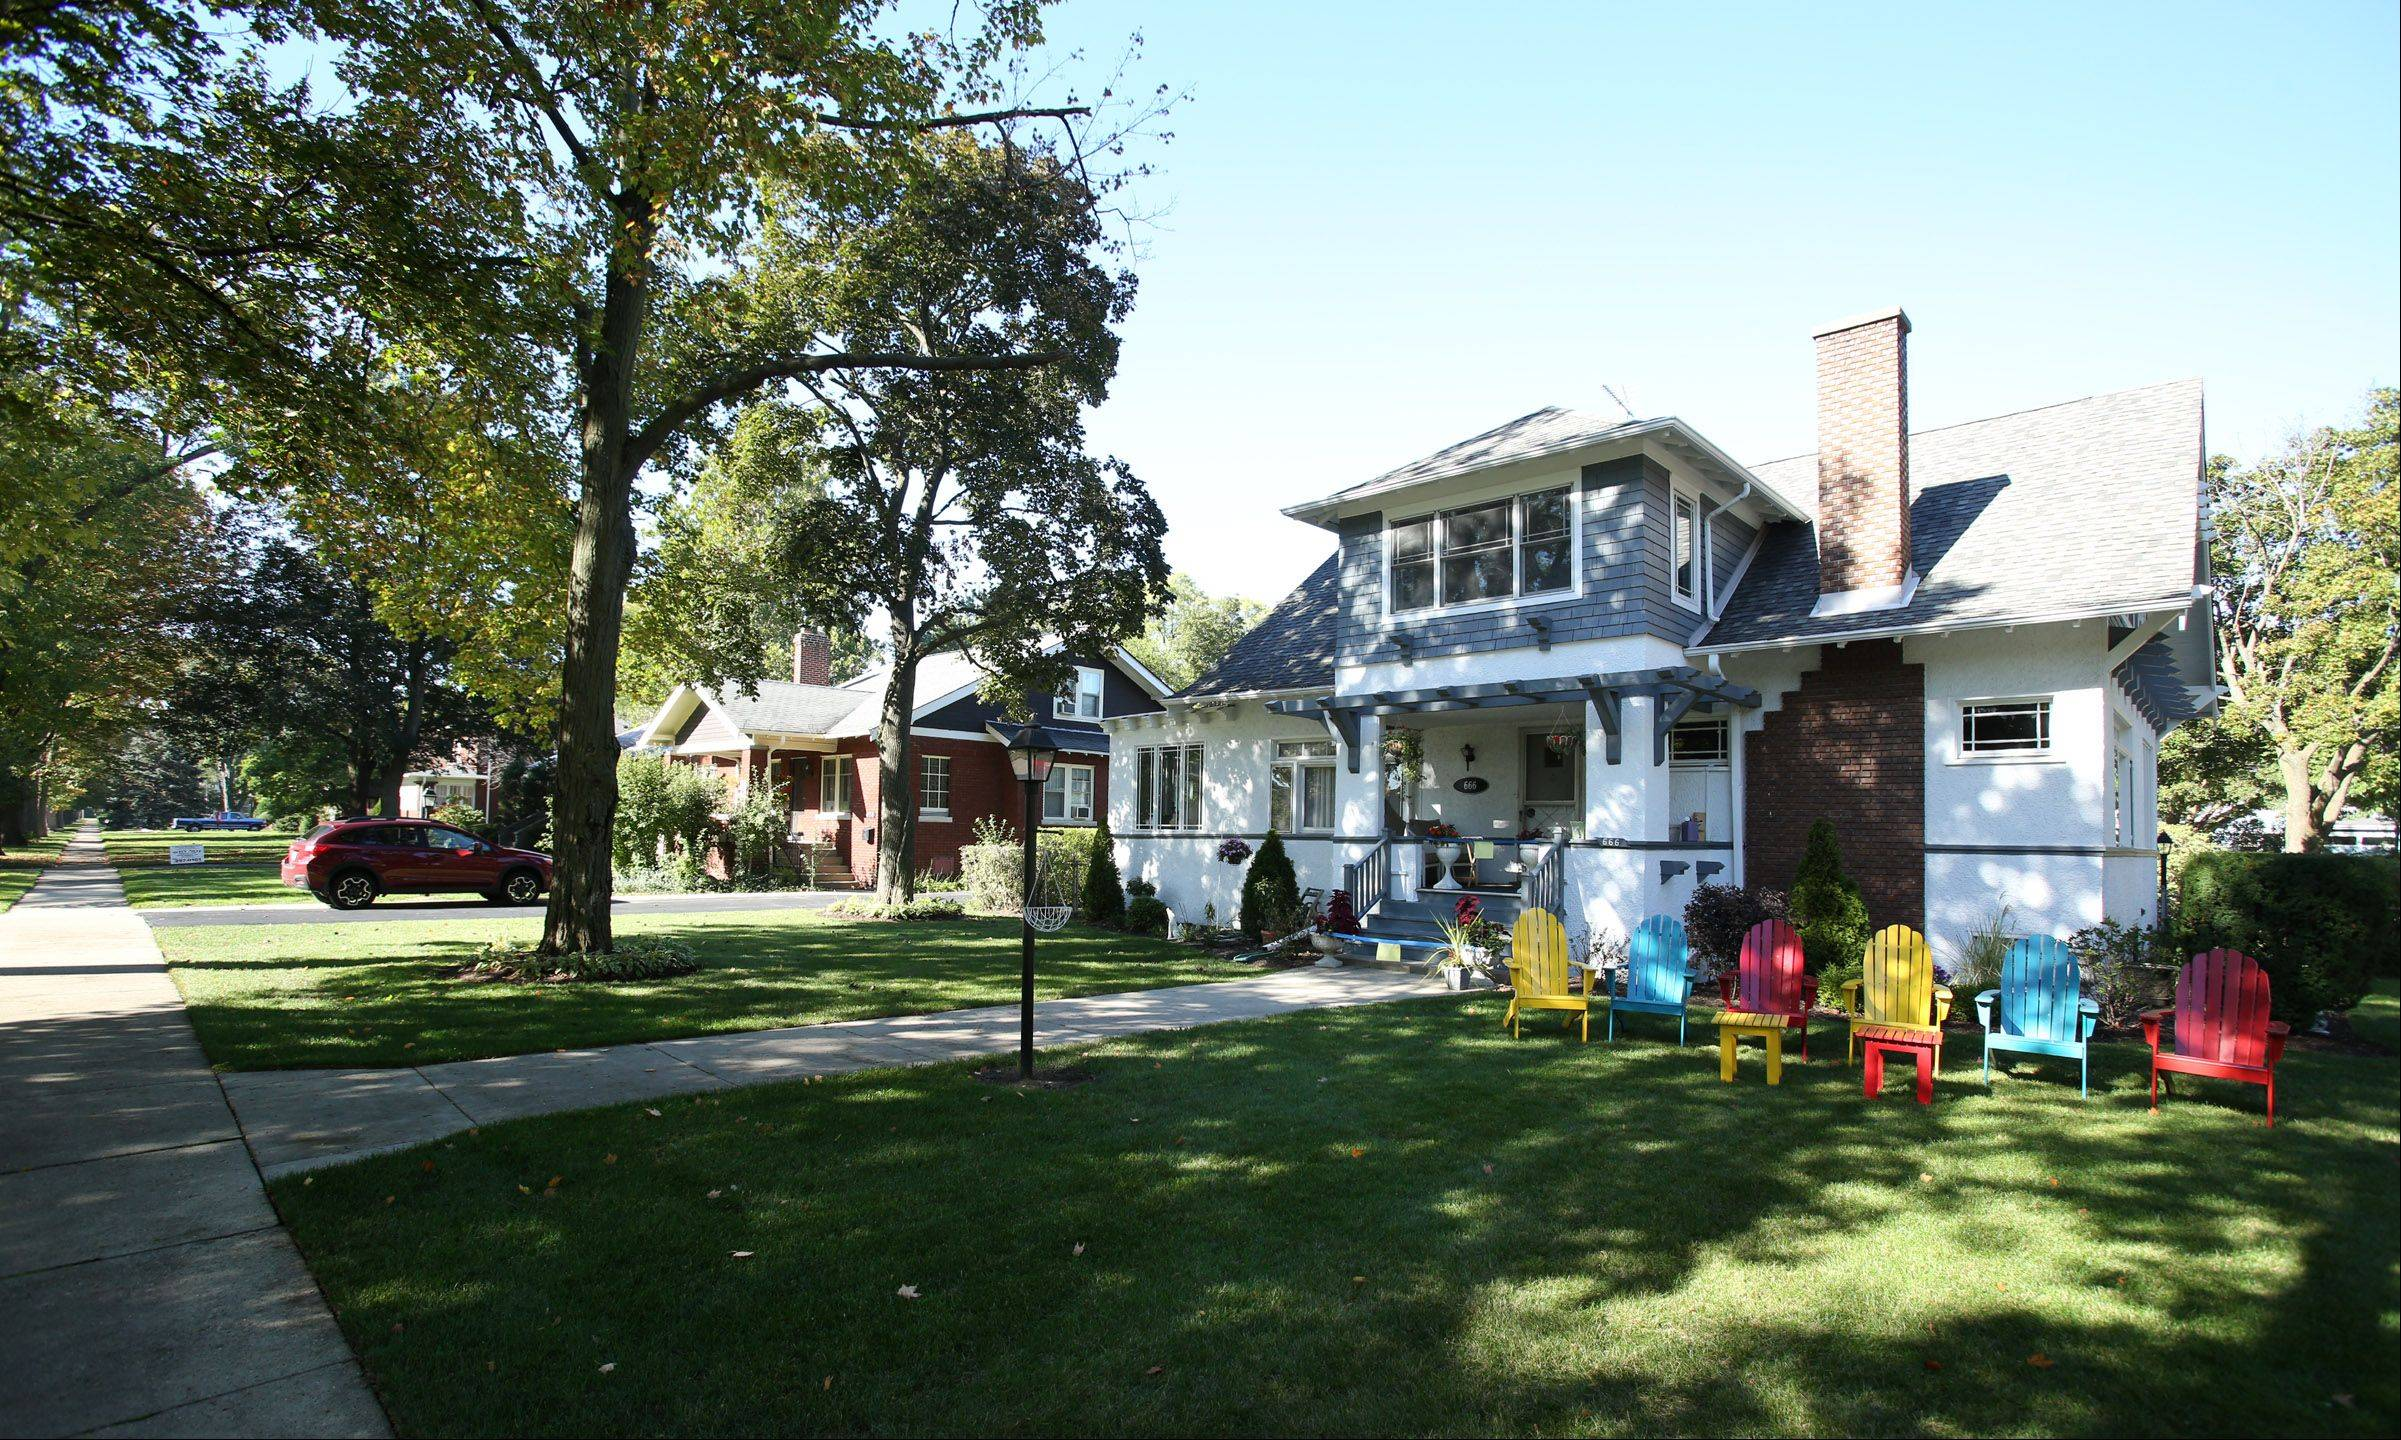 Laurel Avenue in Des Plaines is in the Silk Stocking neighborhood, where many of the town's oldest and most stately homes exist.